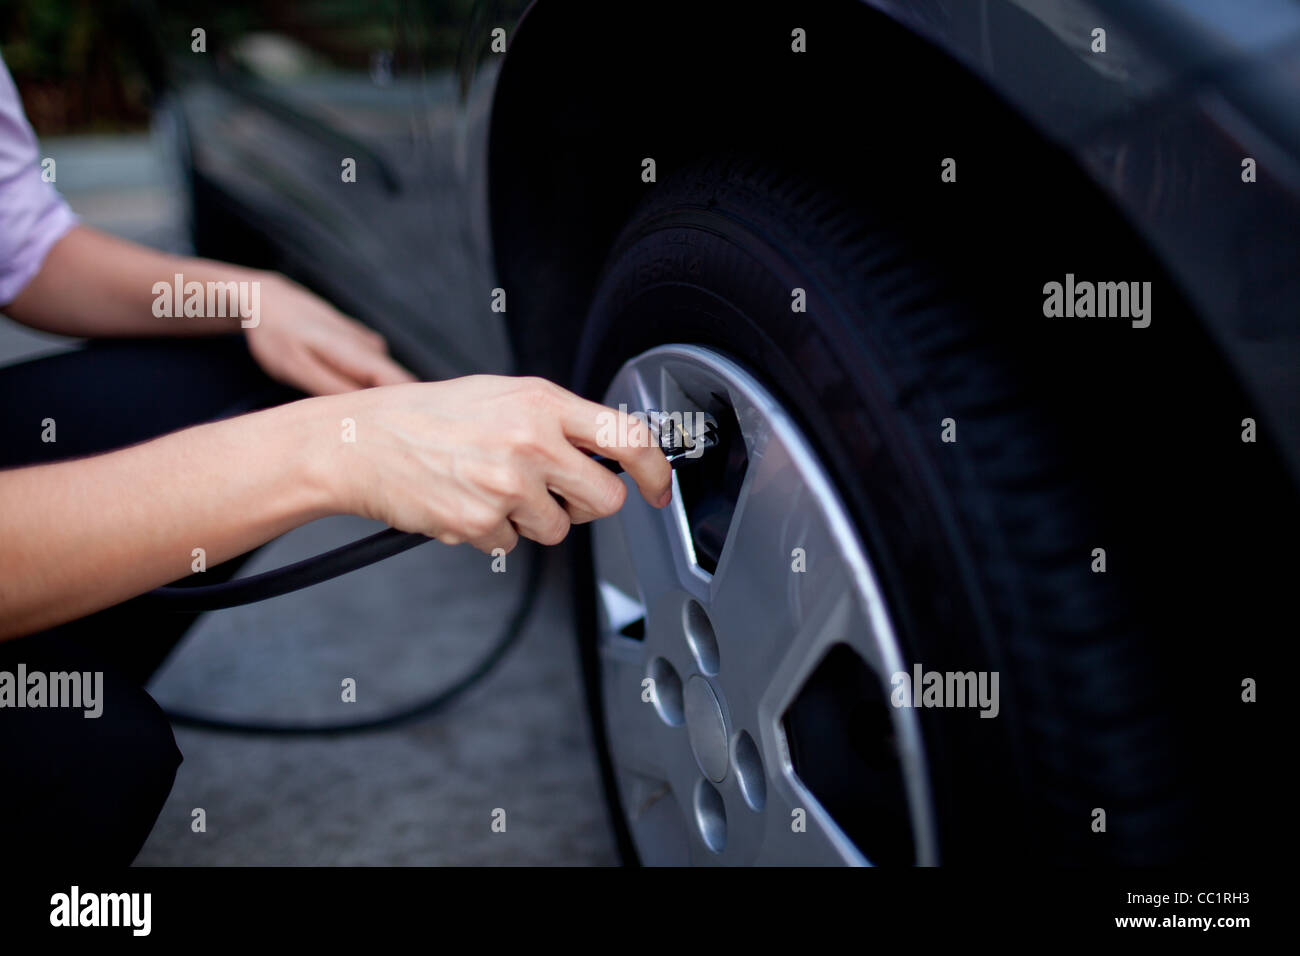 Woman fills tire in car - Stock Image